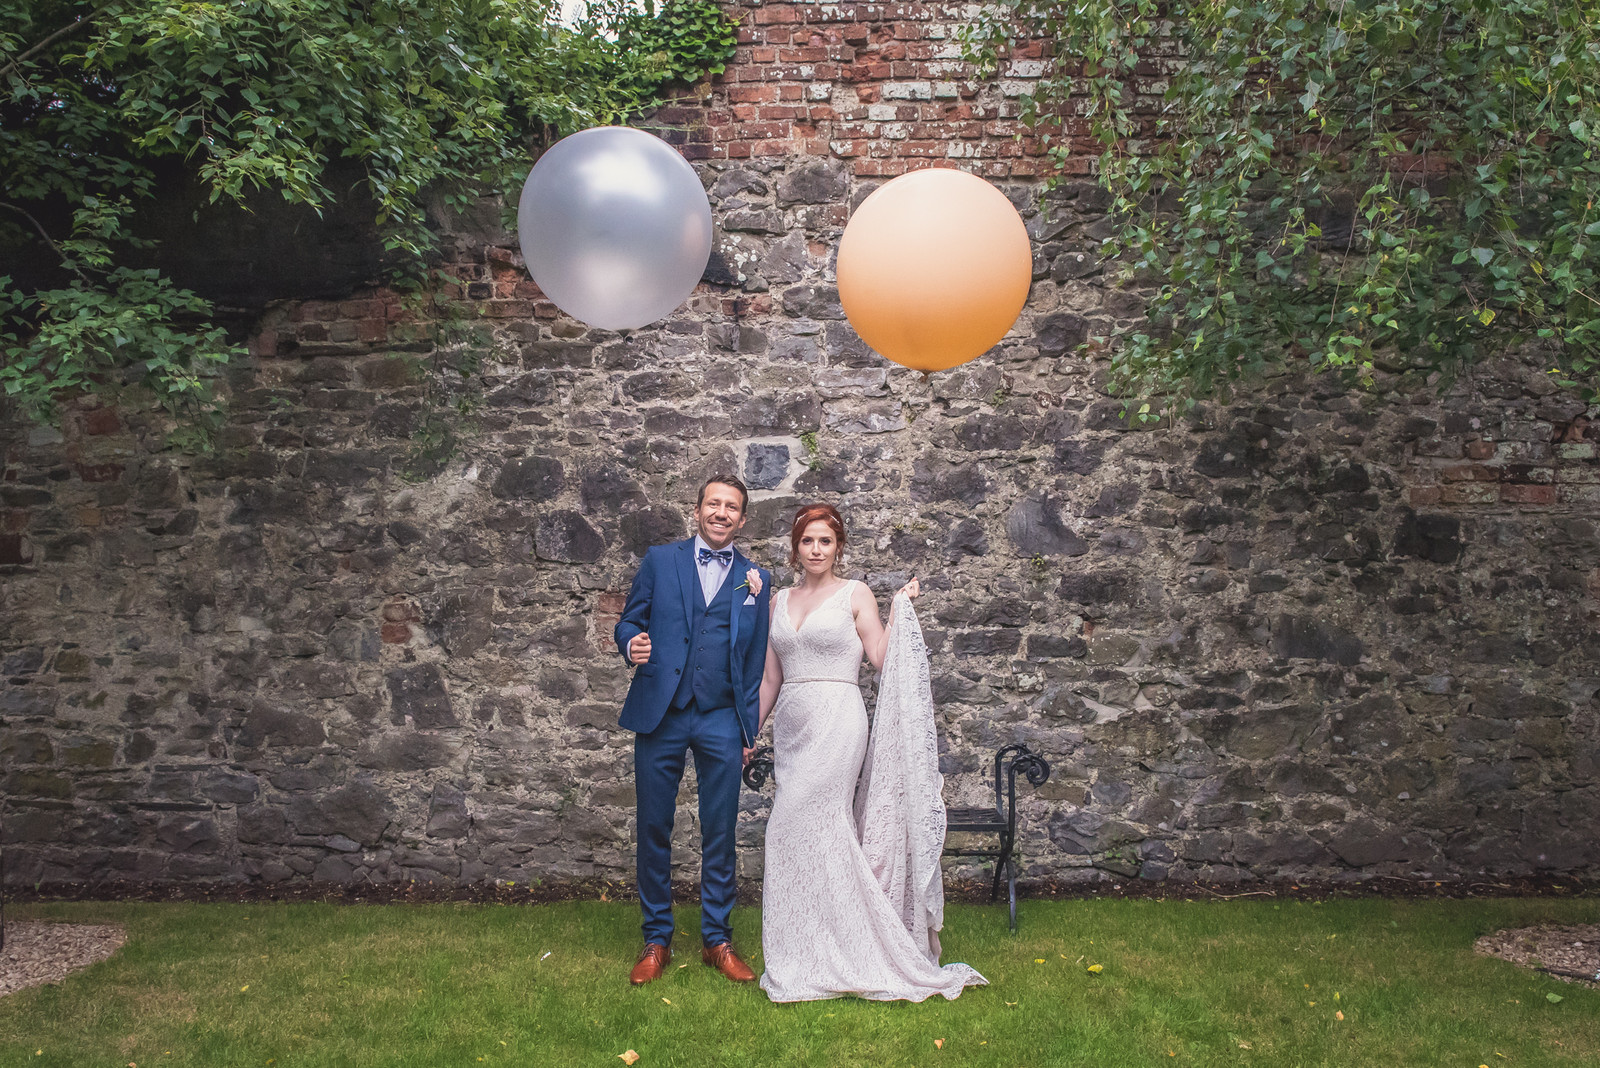 Ð?аÑ?Ñ?инки по запÑ?оÑ?Ñ? wedding confetti balloons